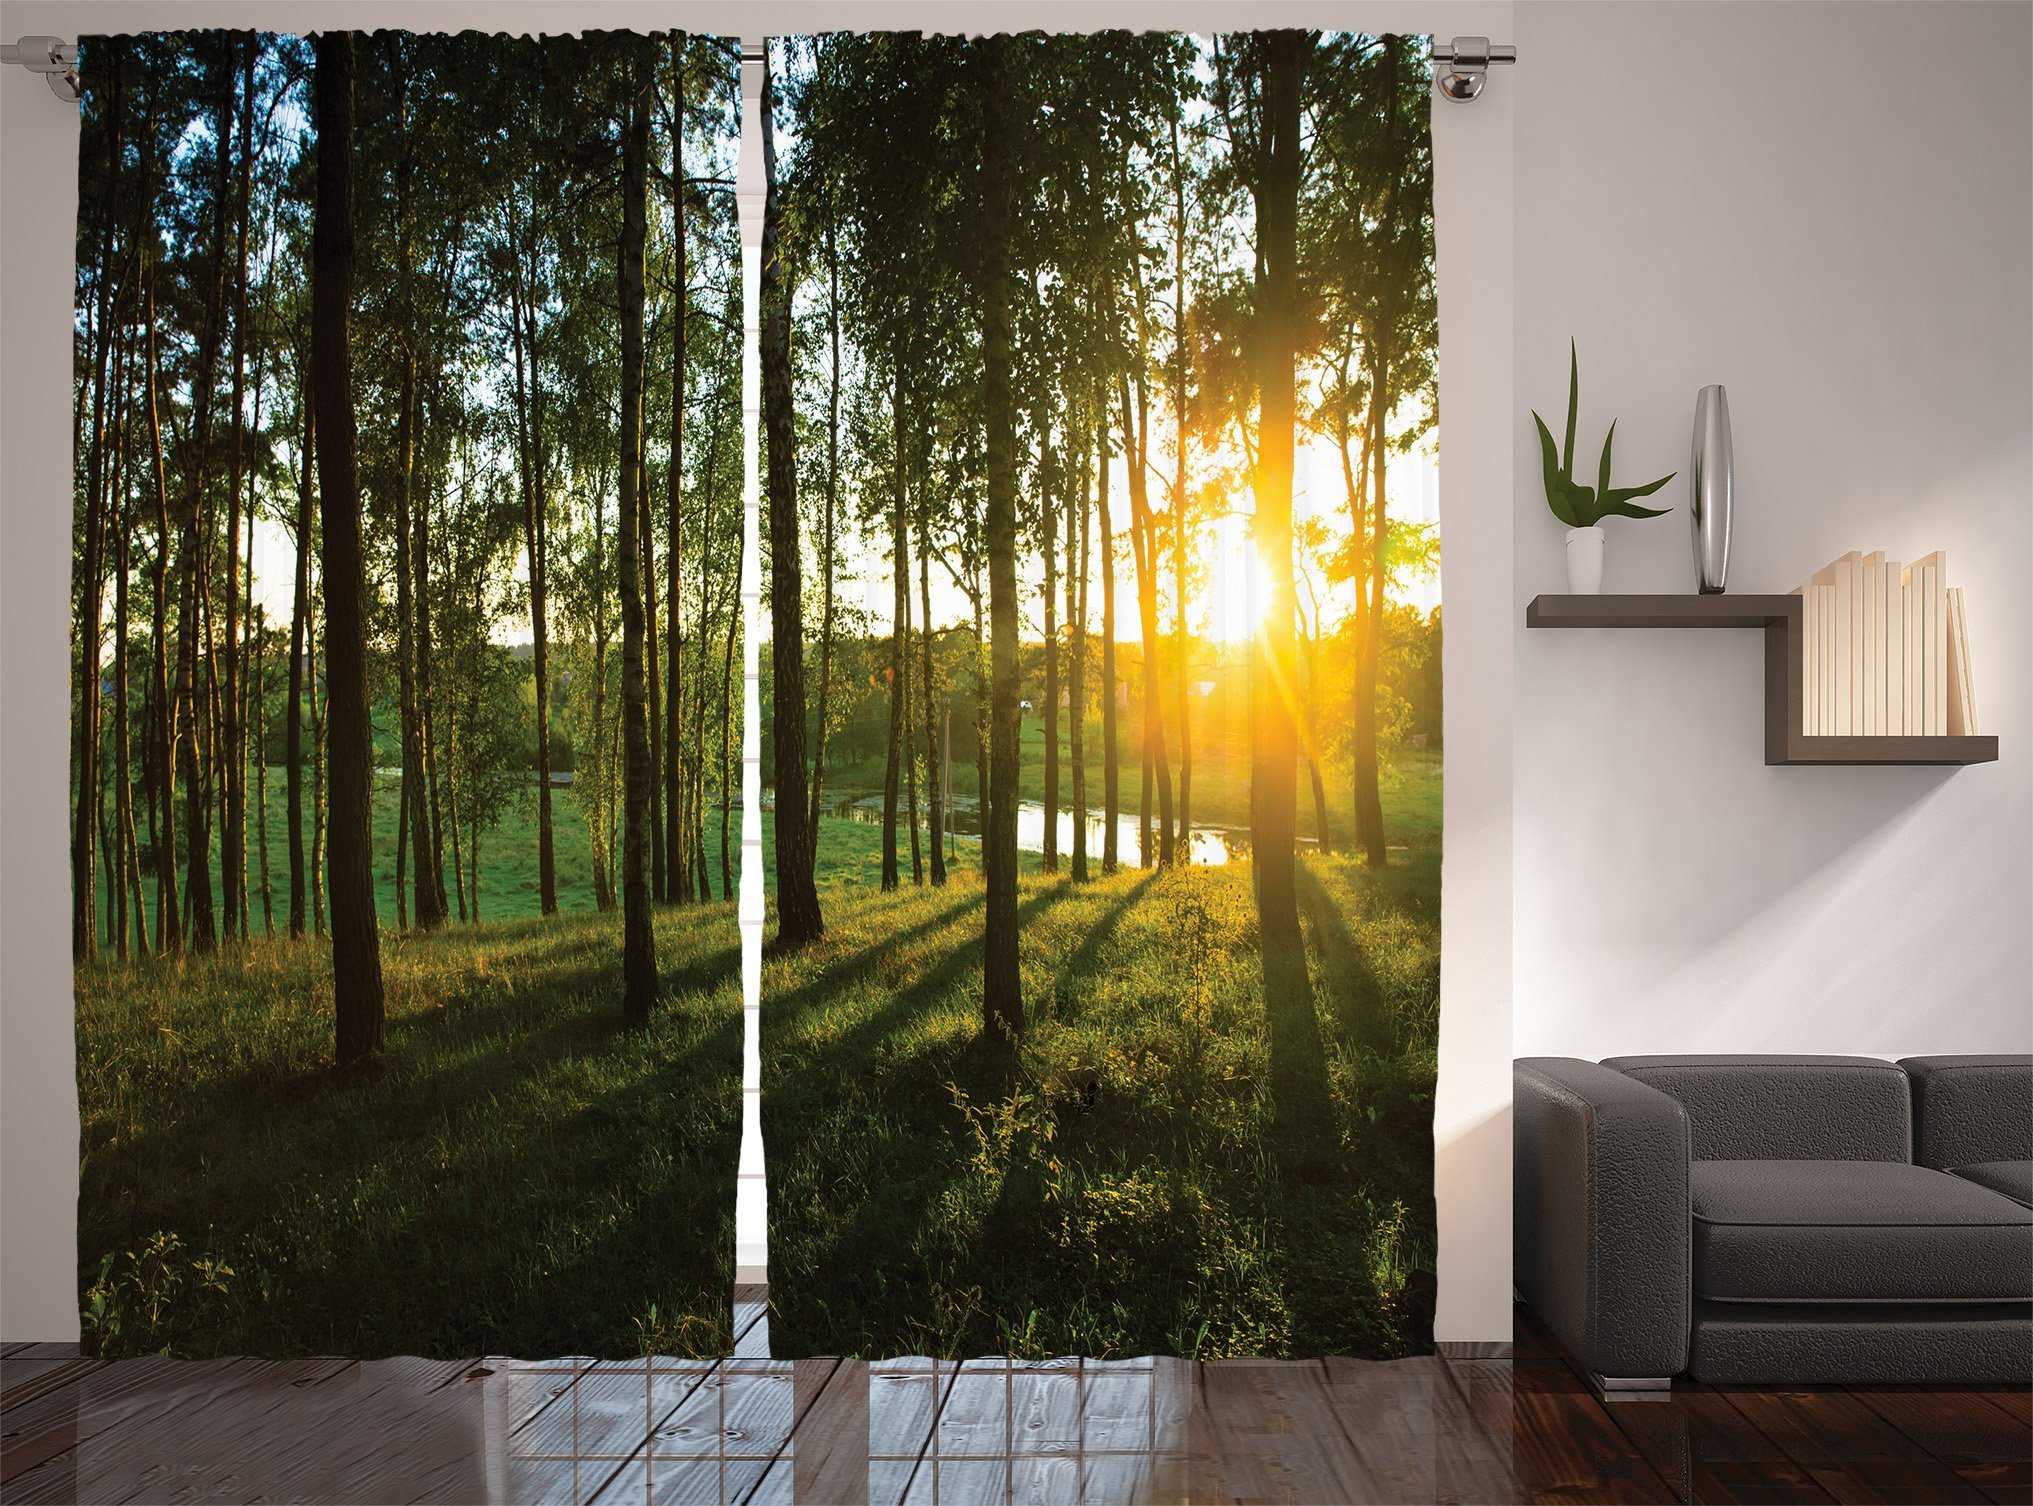 Ambesonne Farm House Decor Collection, Scene of Sunset in the Scattered Woods at Autumn and River Comes into View Print, Living Room Bedroom Curtain 2 Panels Set, 108 X 84 Inches, Olive Green Yellow